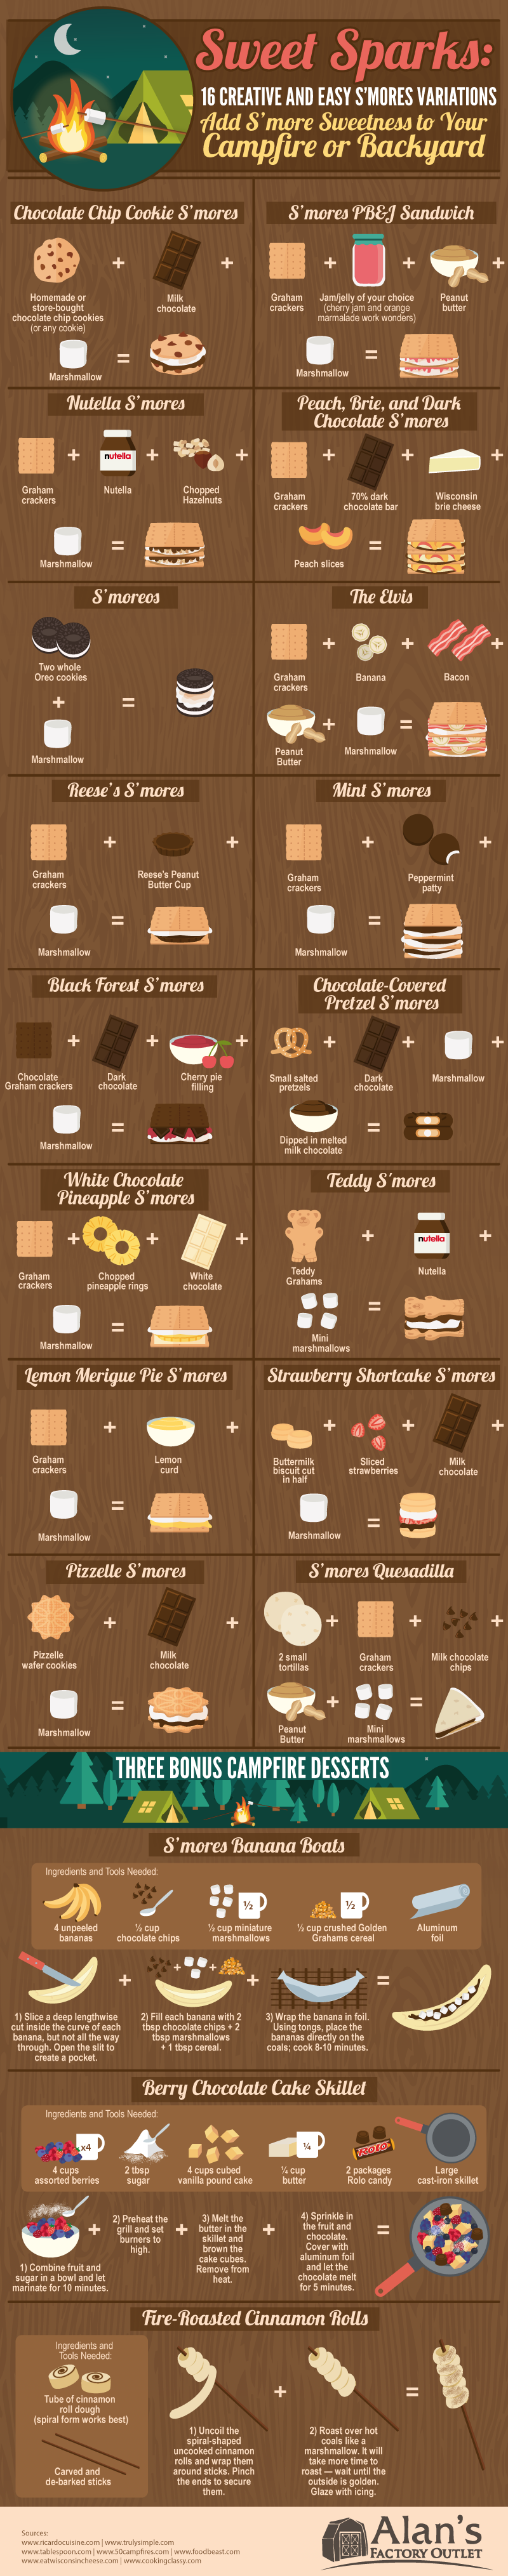 Sweet Sparks: 16 Creative and Easy S'Mores Variations